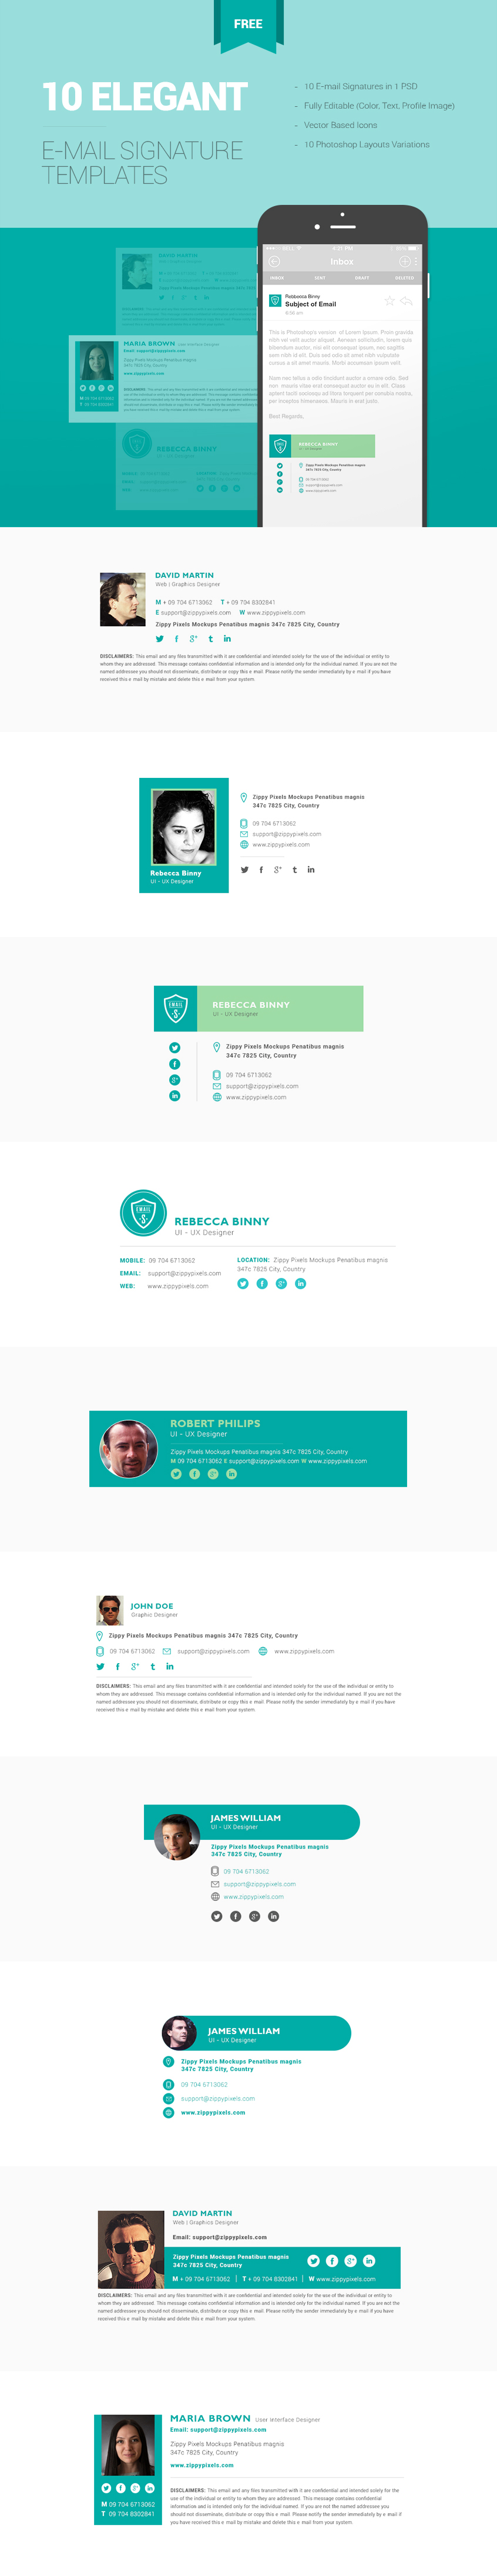 10 Free Email Signature Templates In One PSD | ZippyPixels